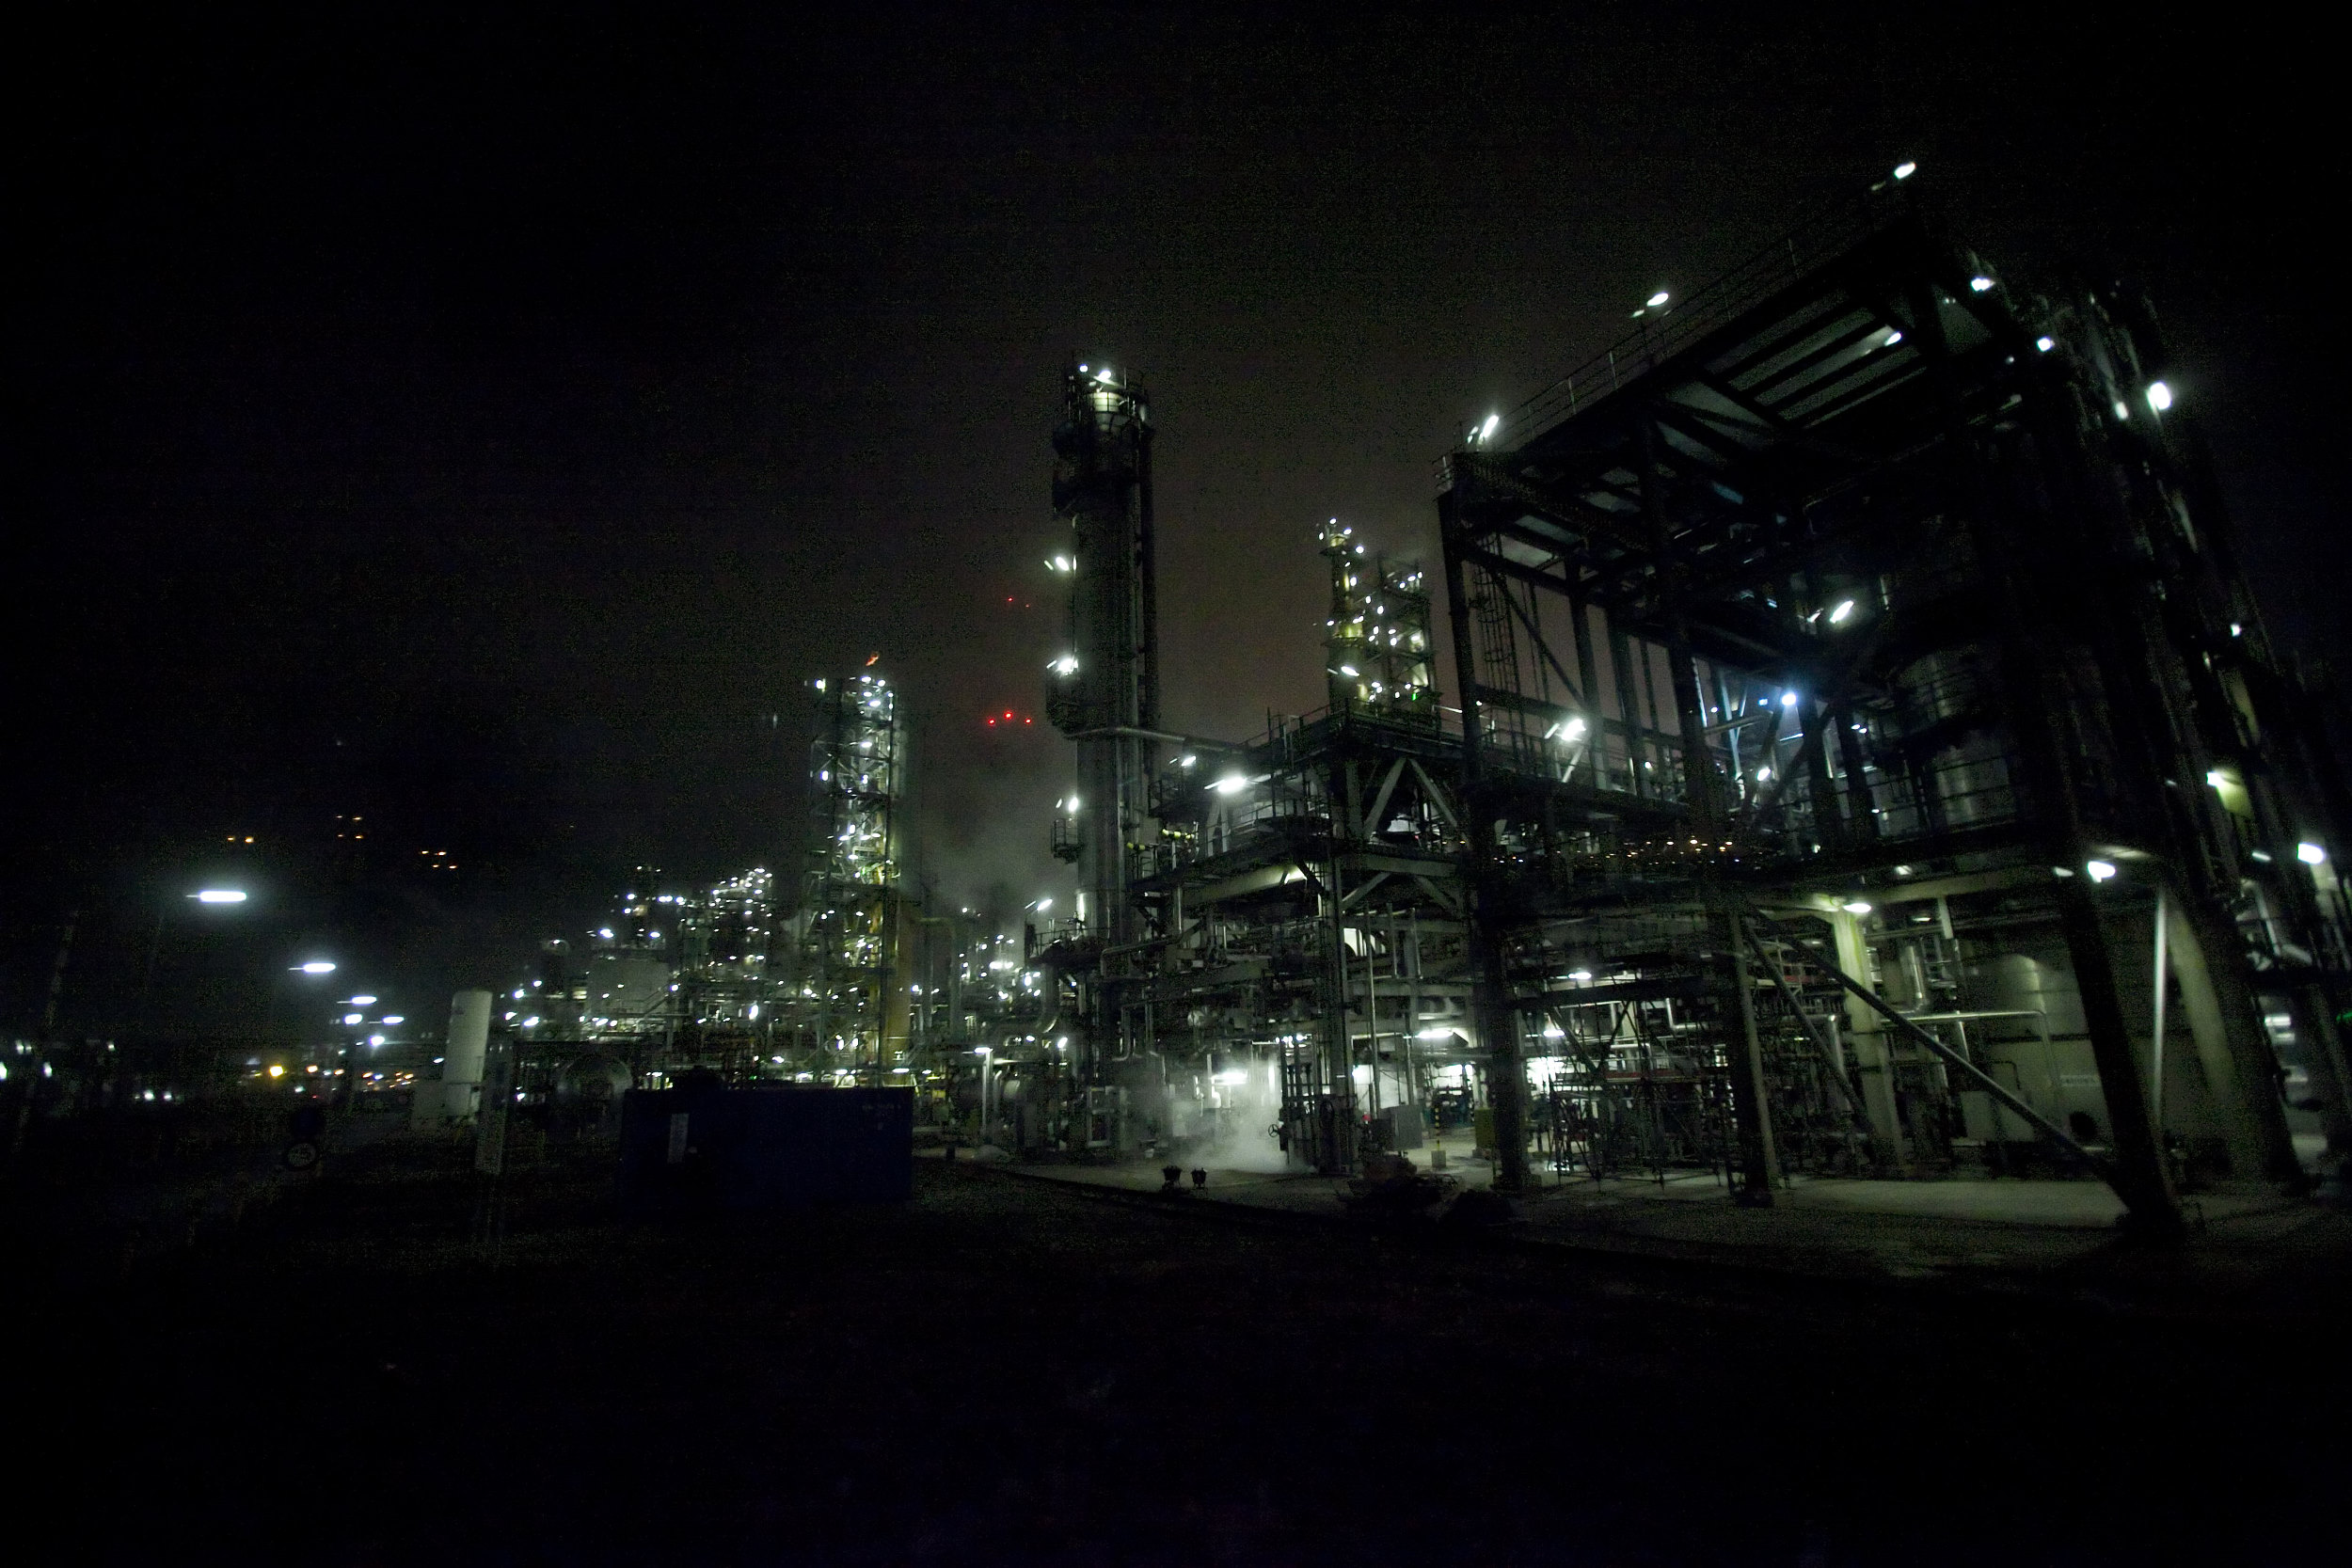 haven industrie nacht verlichting donker wit